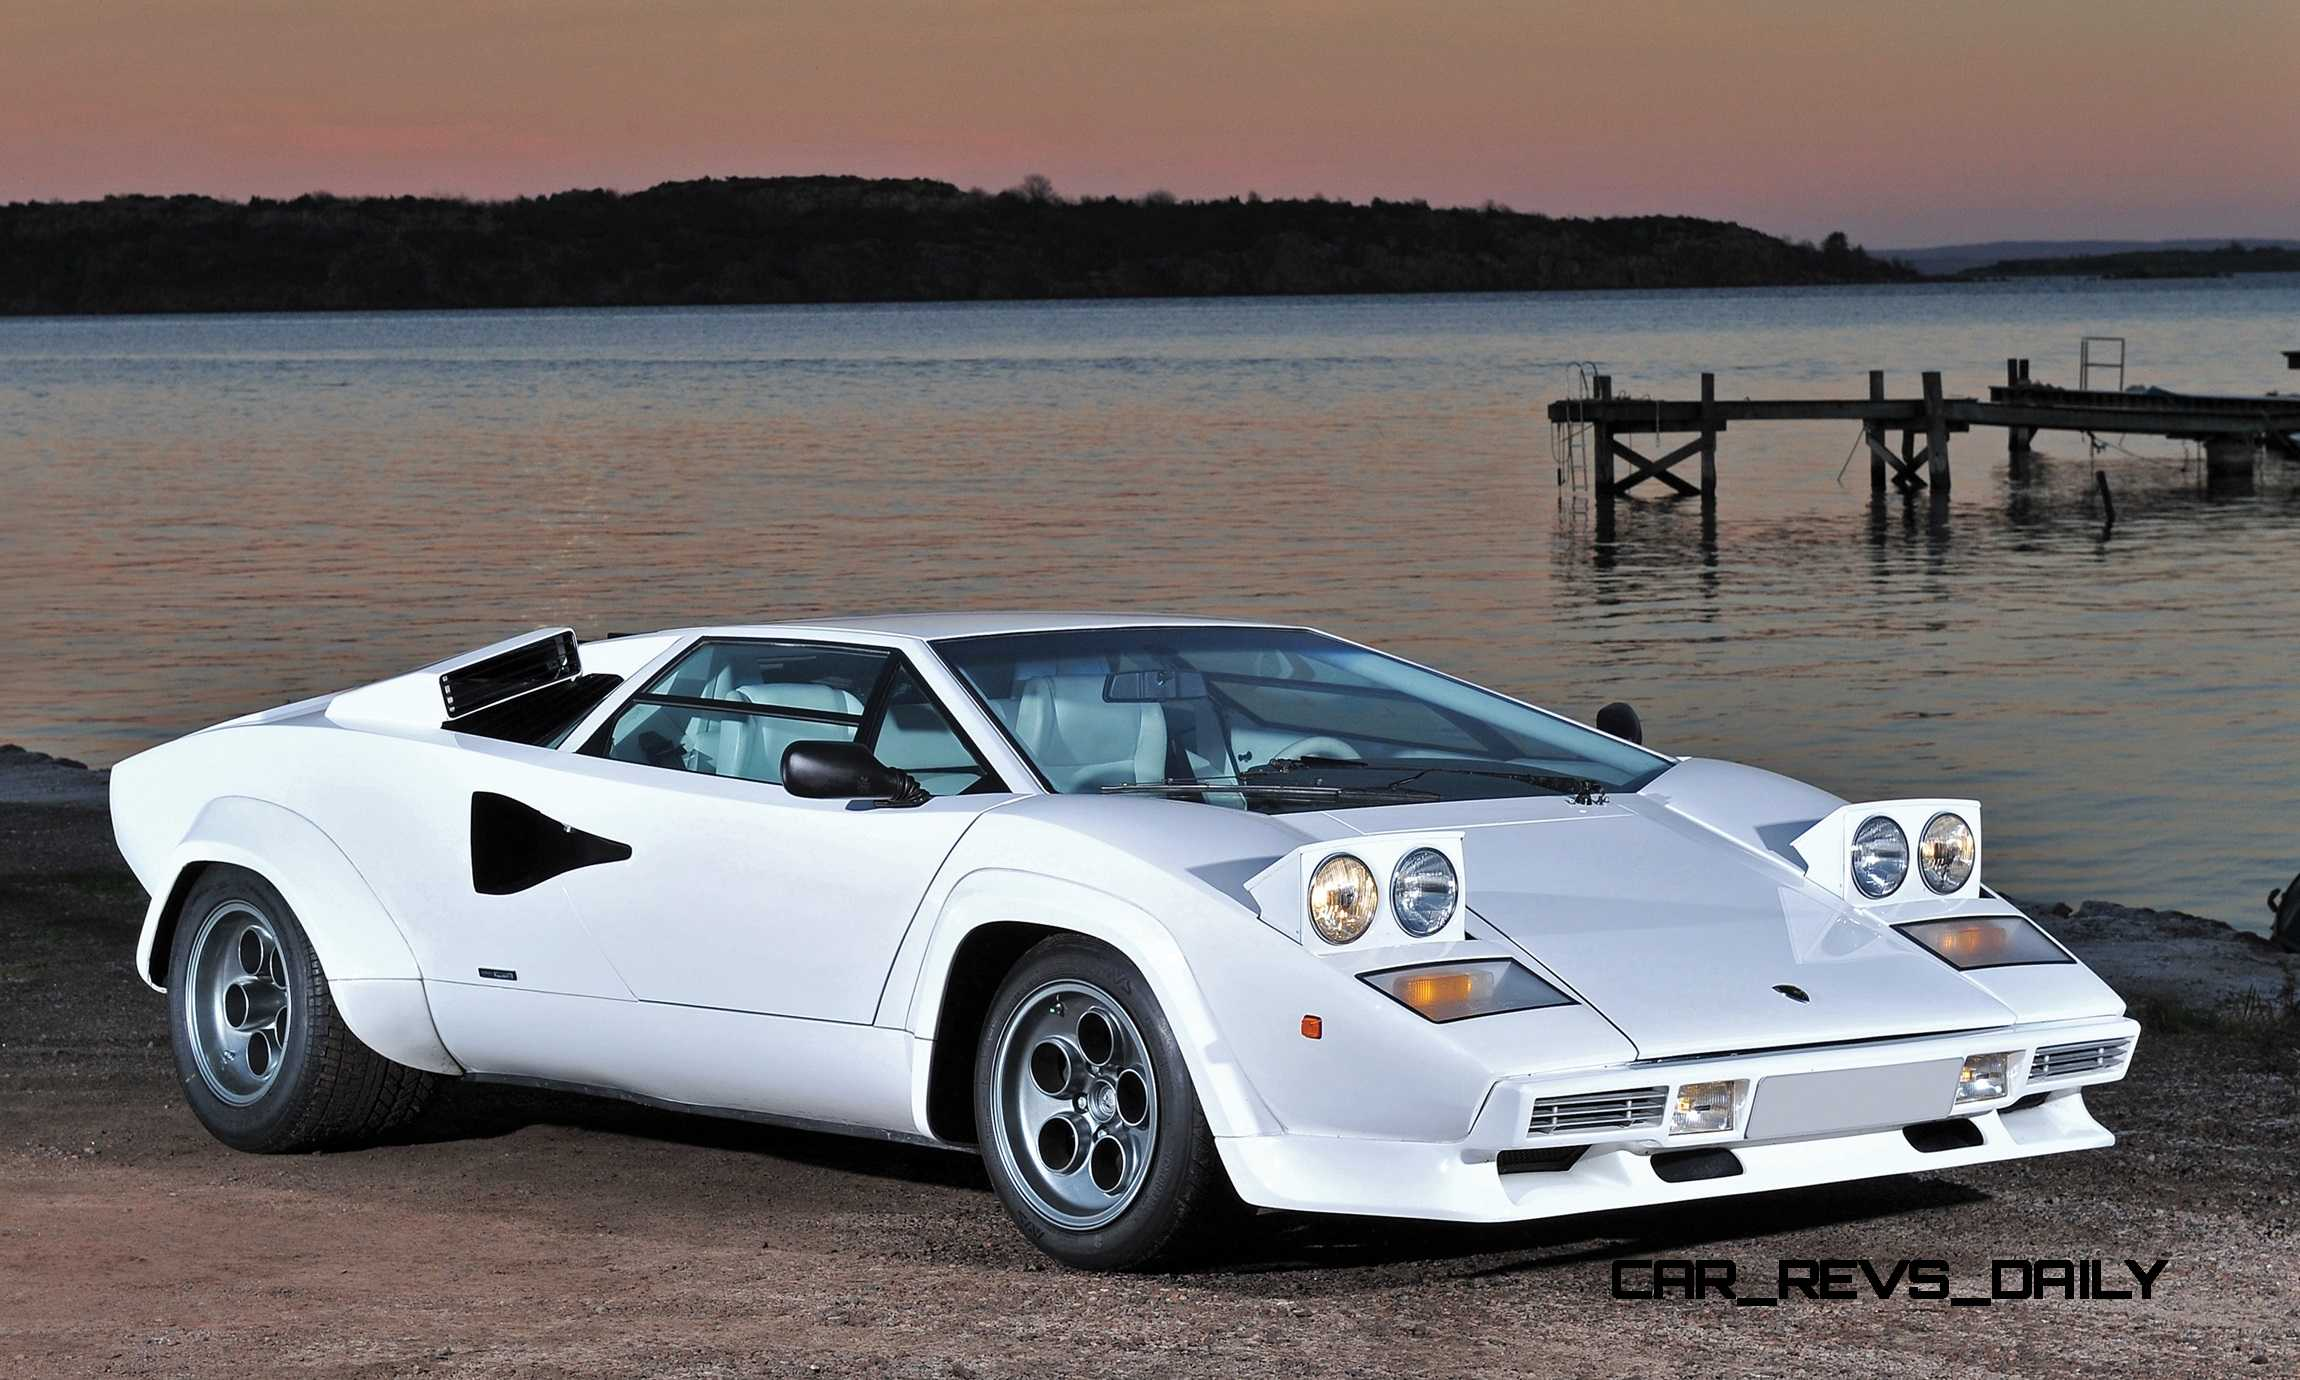 at sale the for pm shot of day classic lamborghini screen car